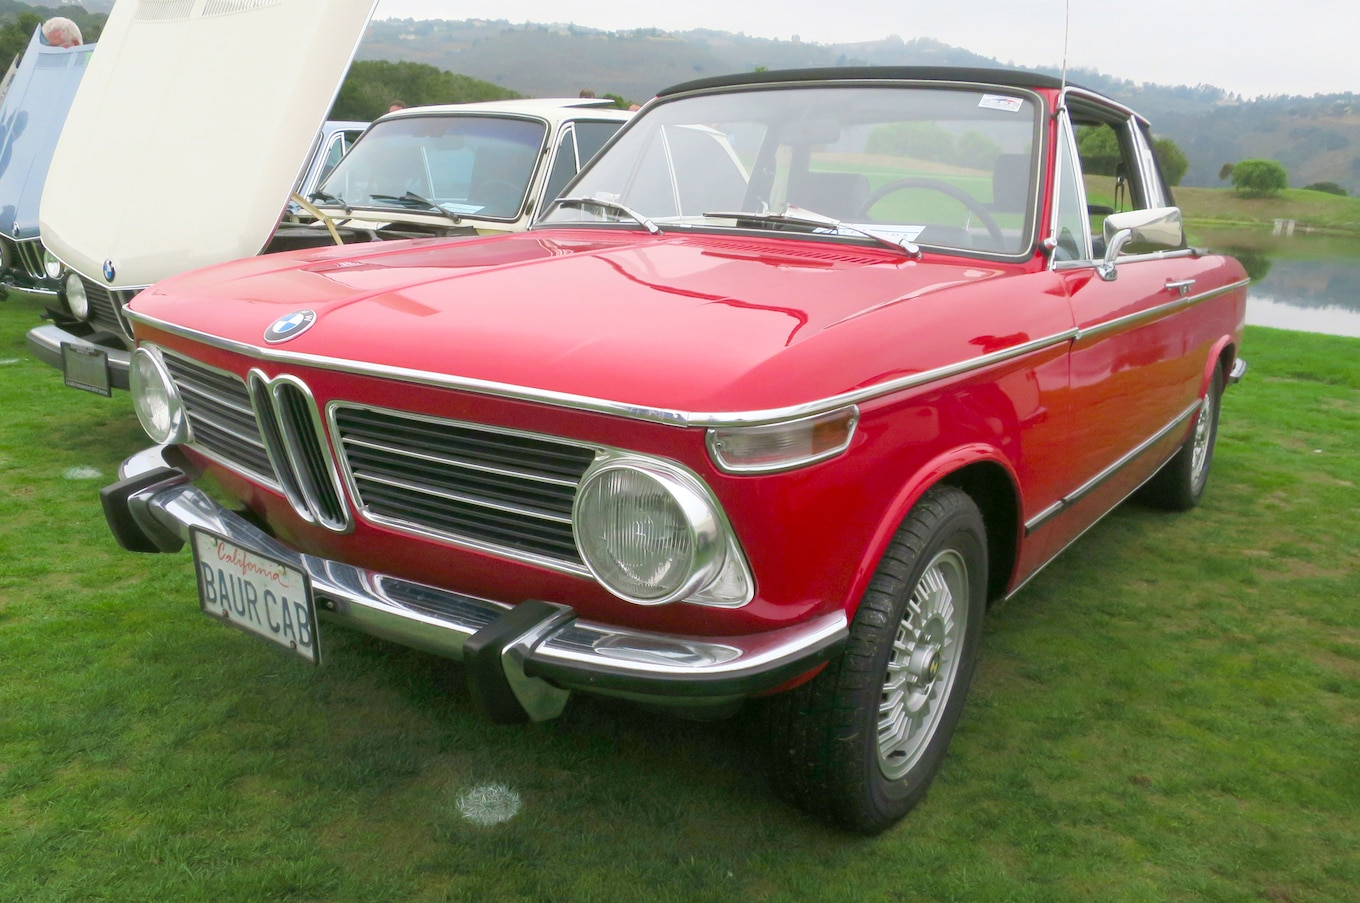 Baur Cabriolet Classic Bmws At The 2016 Legends Of The Autobahn Concours